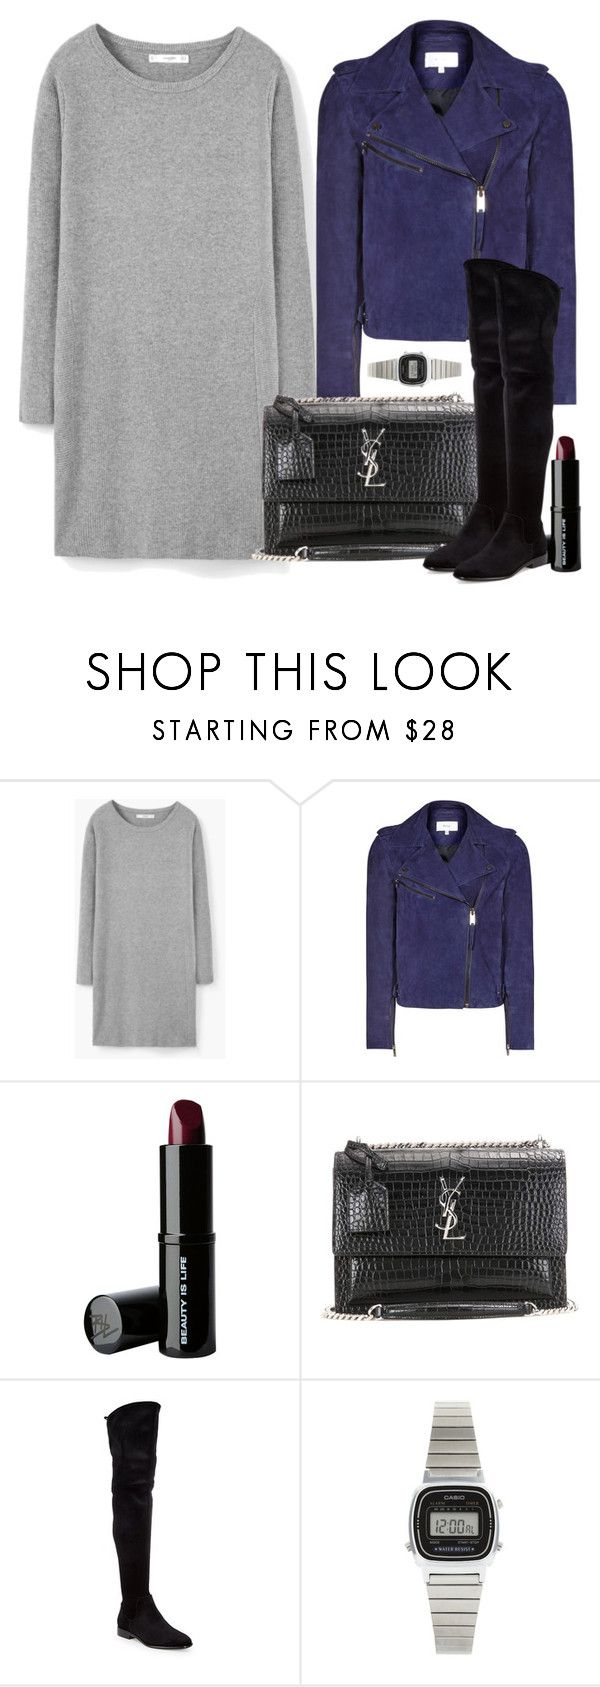 """""""Sem título #5175"""" by beatrizvilar ❤ liked on Polyvore featuring MANGO, Reiss, Beauty Is Life, Yves Saint Laurent, Donna Karan and Casio"""